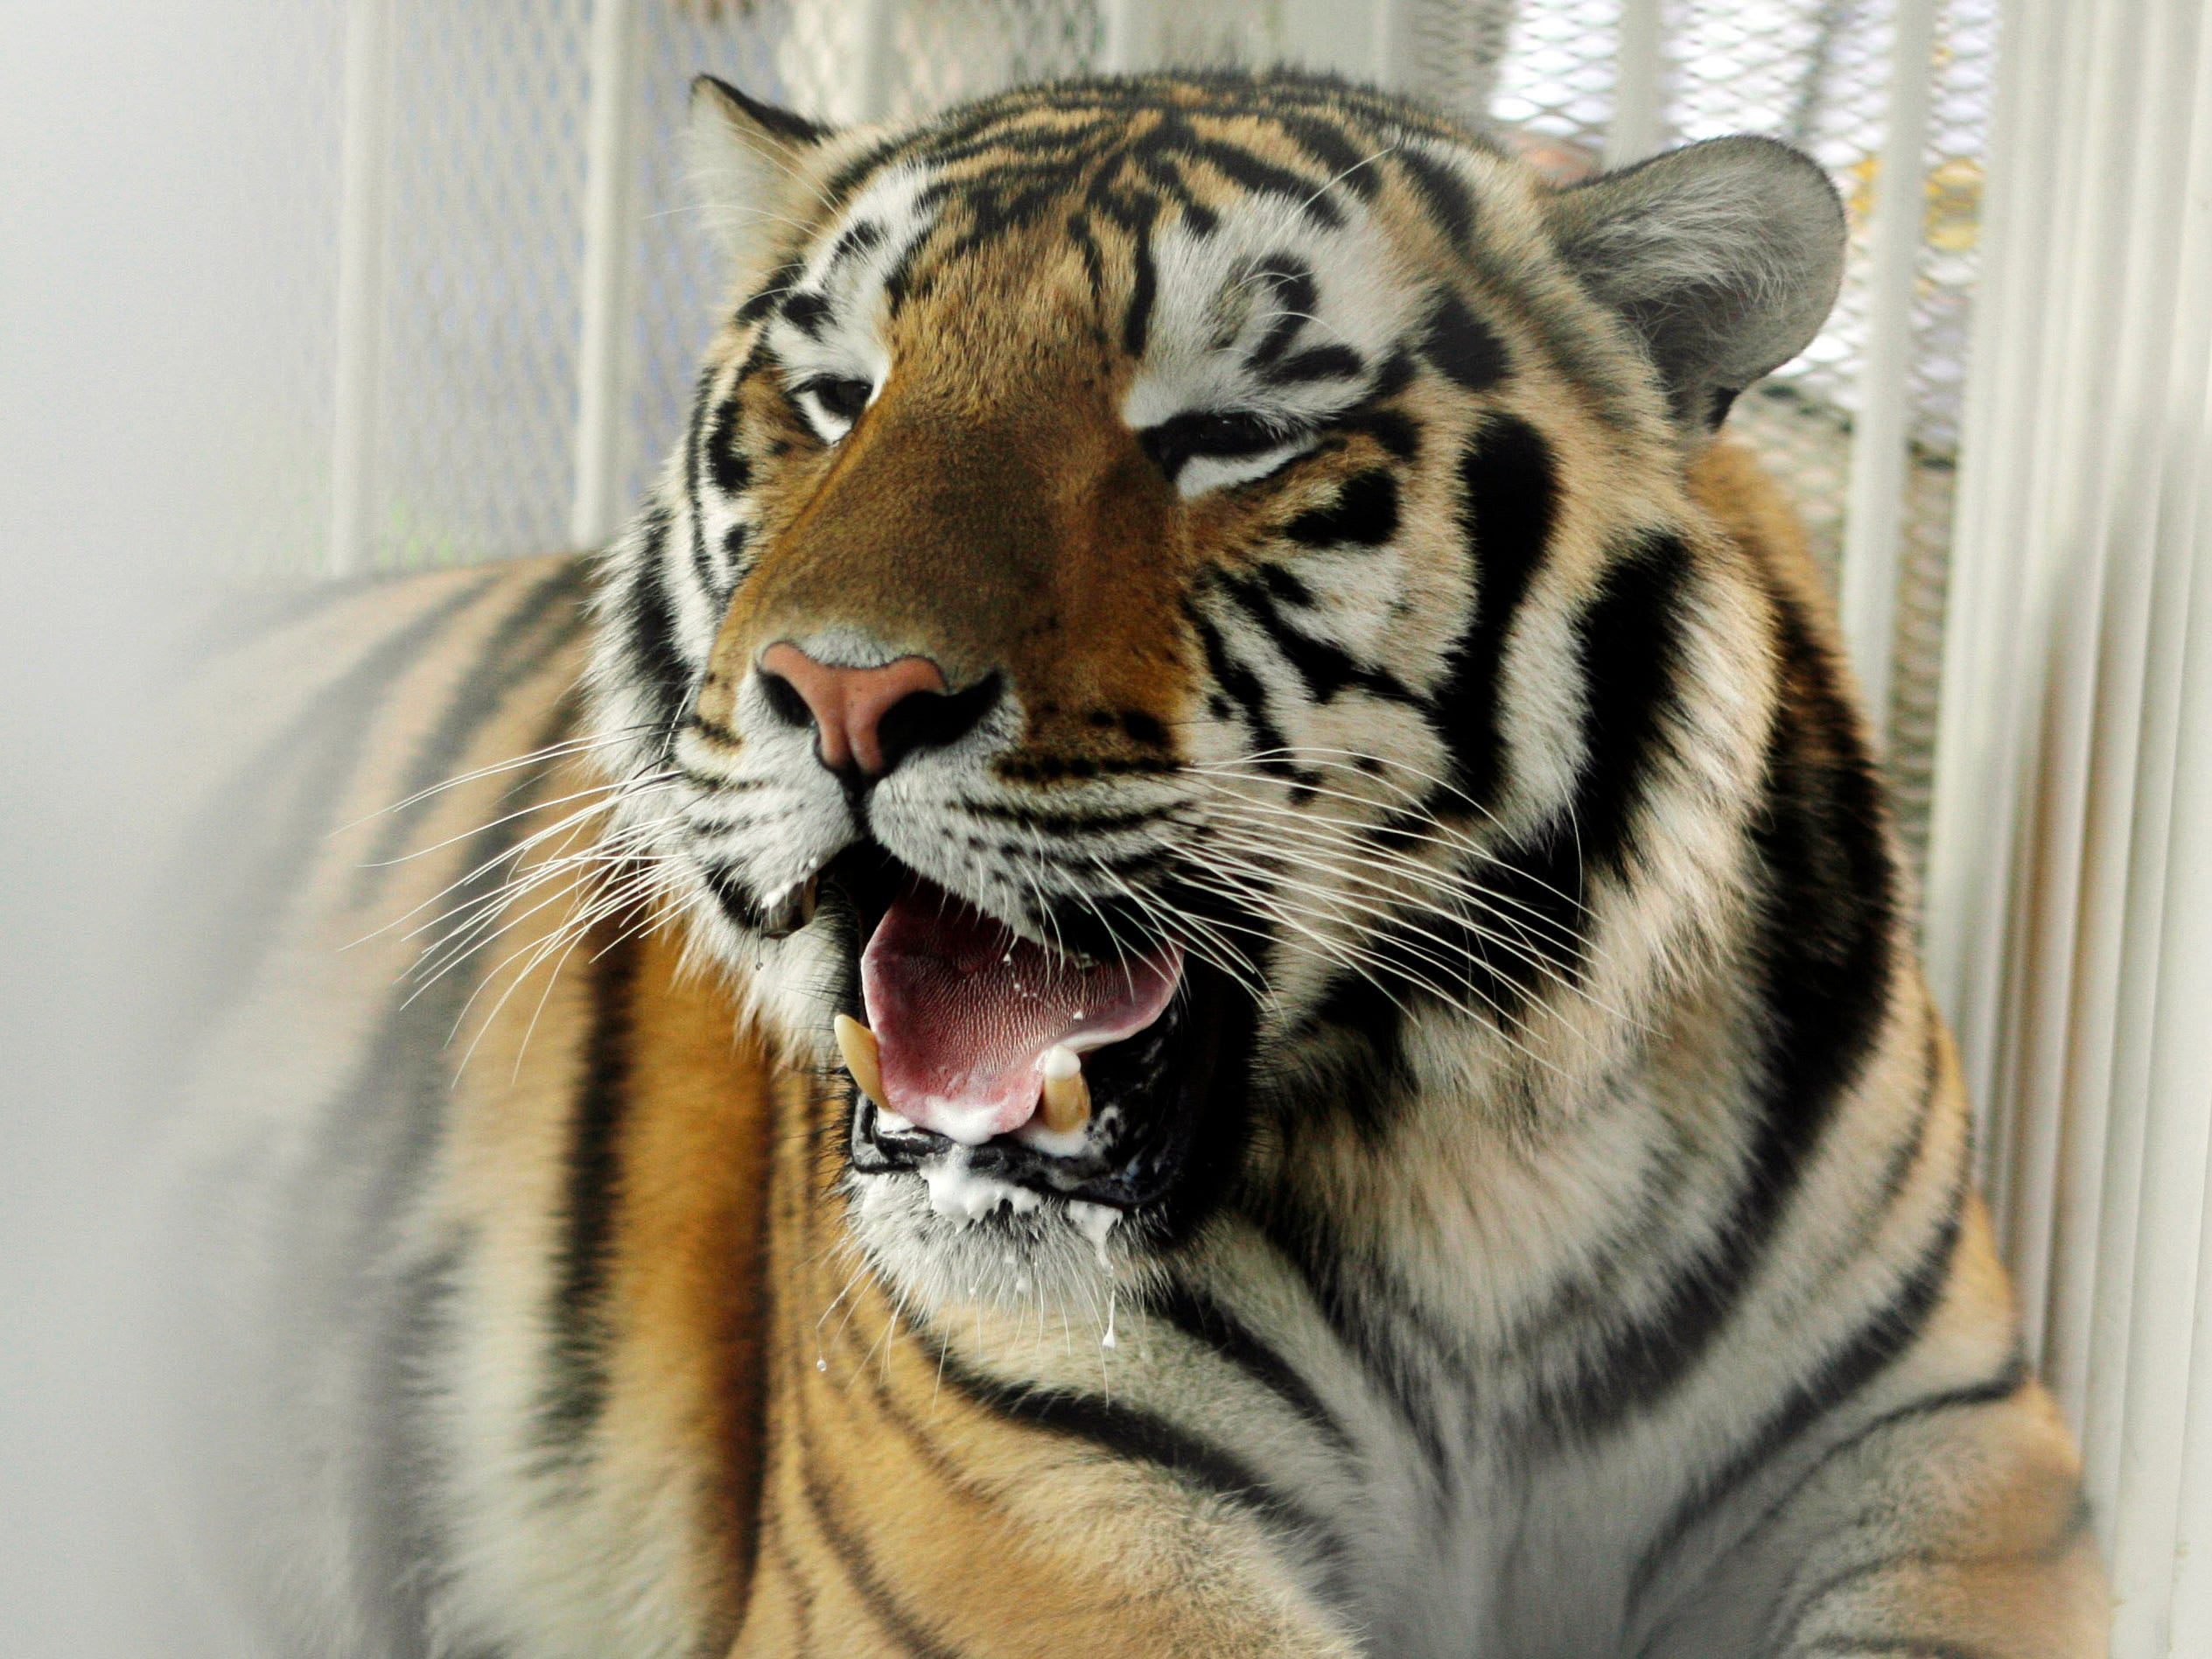 LSU mascot Mike the Tiger. Seriously, is there anything more frightening than a live tiger?